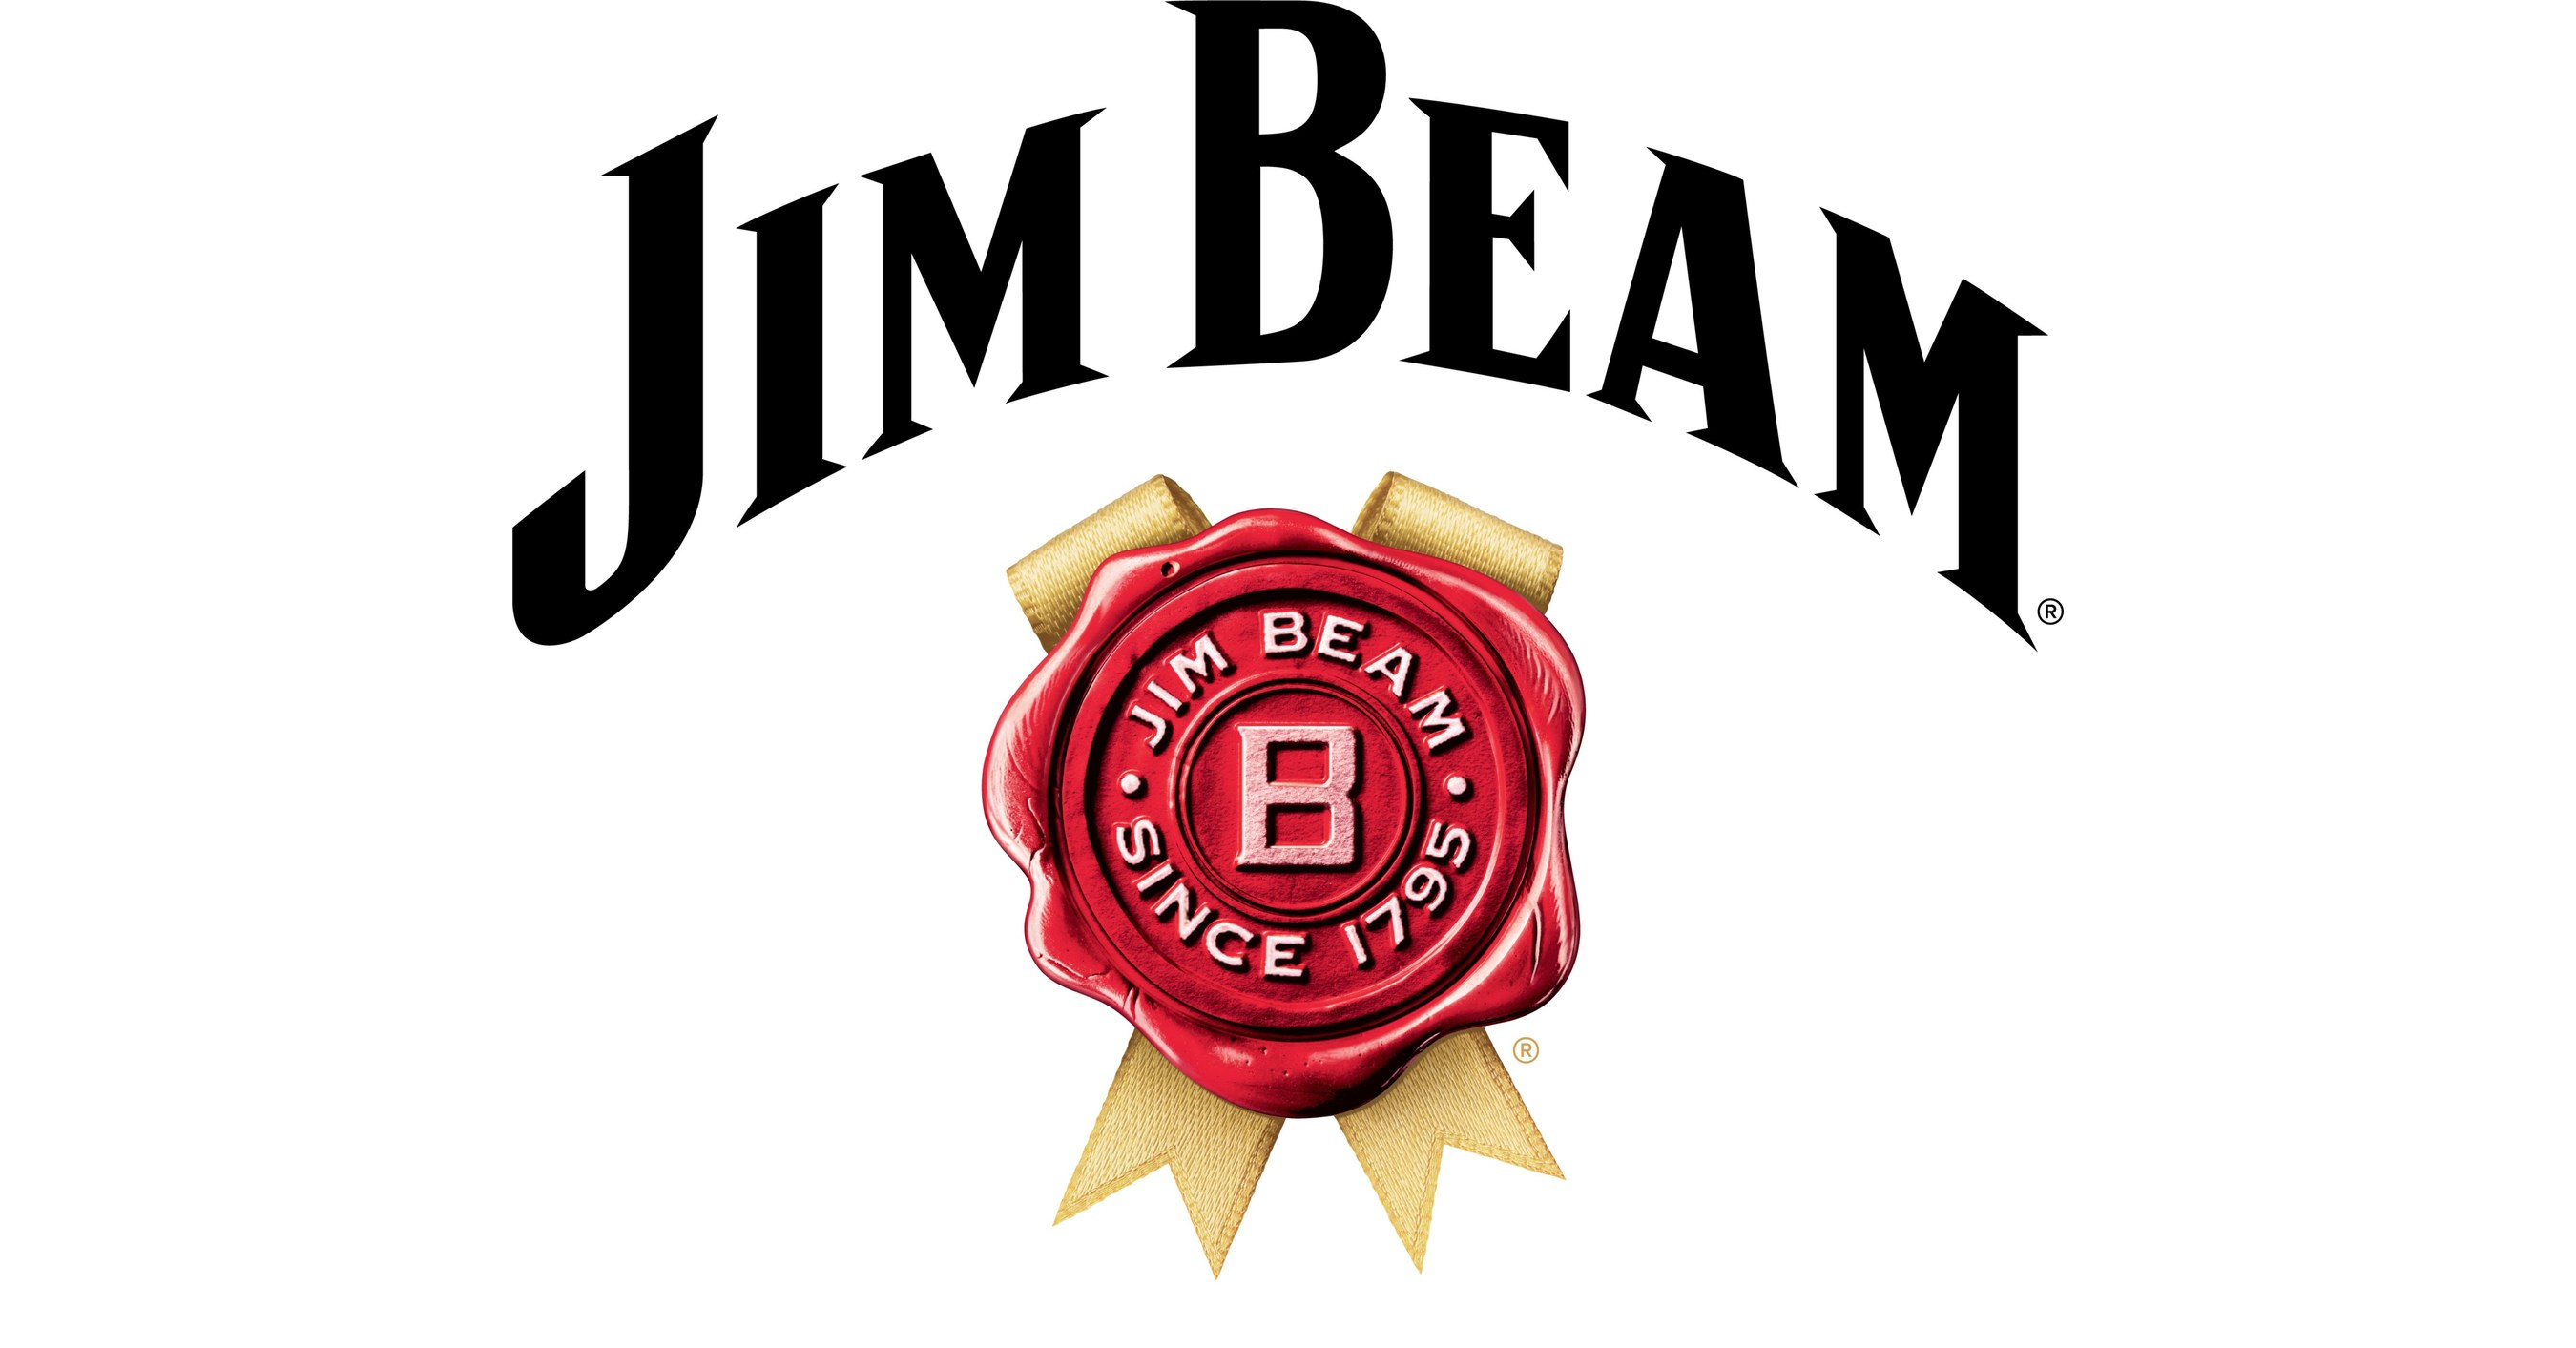 Want To Live Like A Master Distiller? Jim Beam Is Opening Its Home For Rent - A First-Ever Property Listing For The Iconic Bourbon Brand